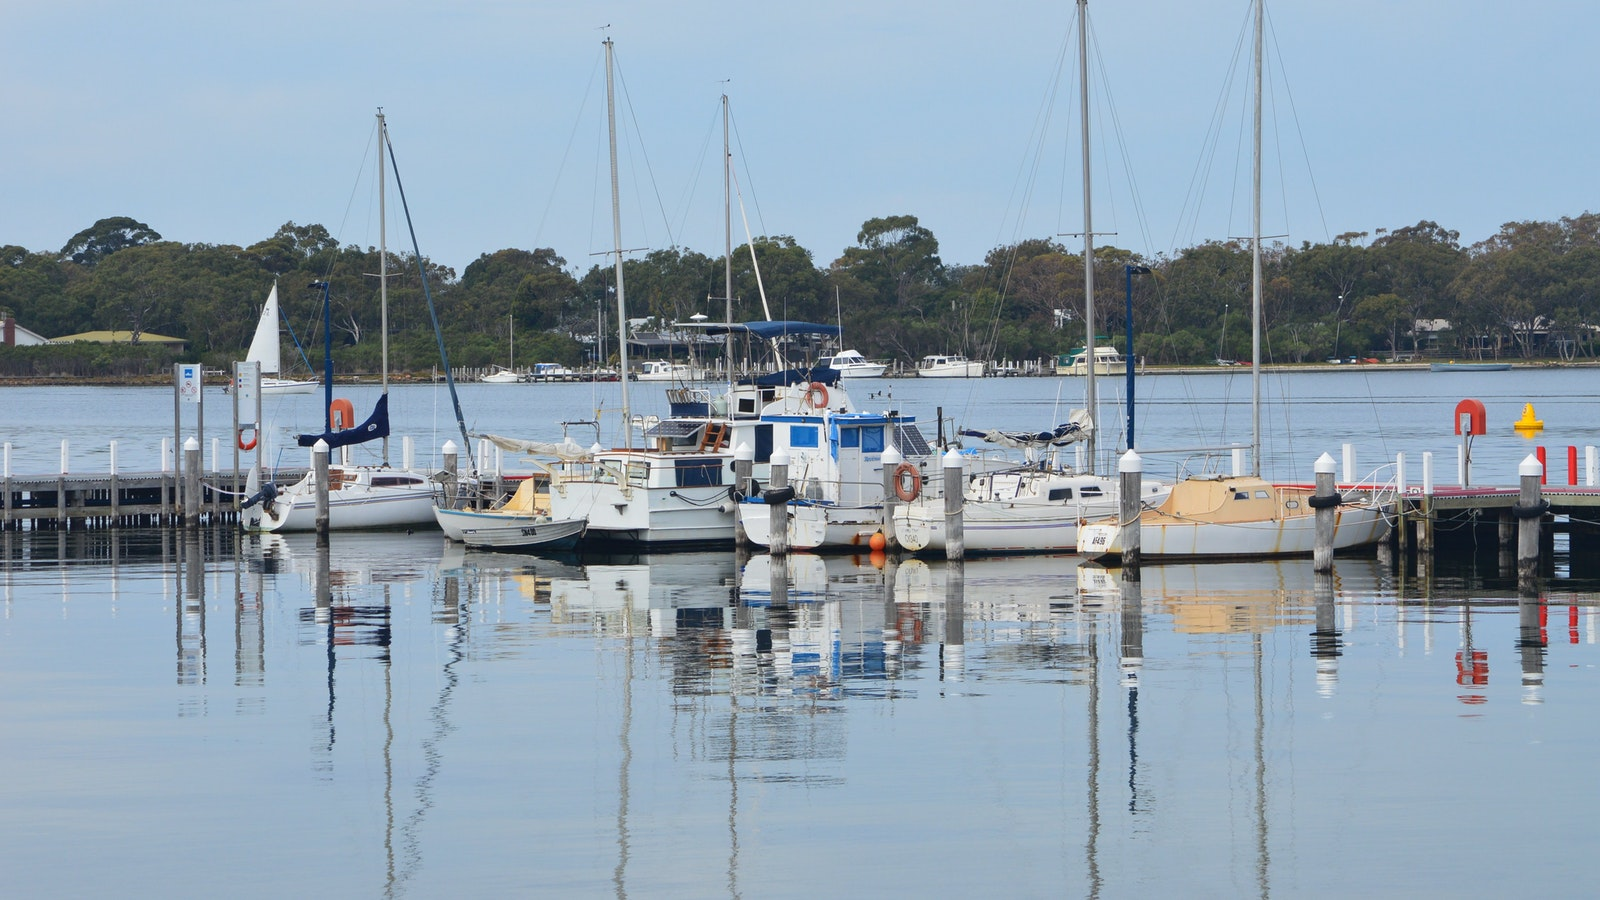 Reflections on the Gippsland Lakes